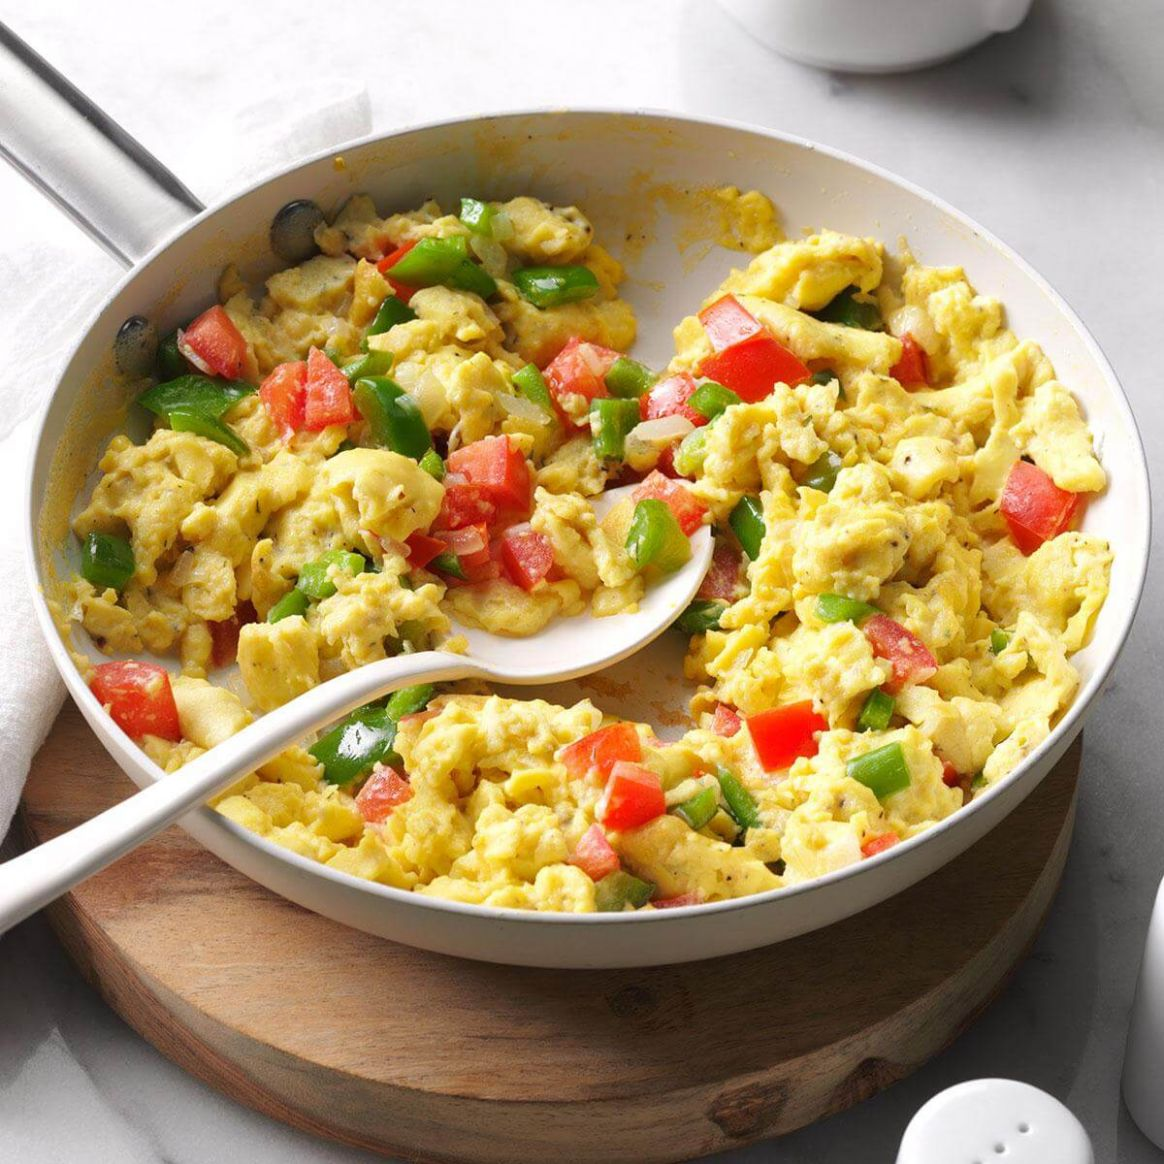 9 Healthy Egg Breakfast Recipes to Make This Morning | Taste of Home